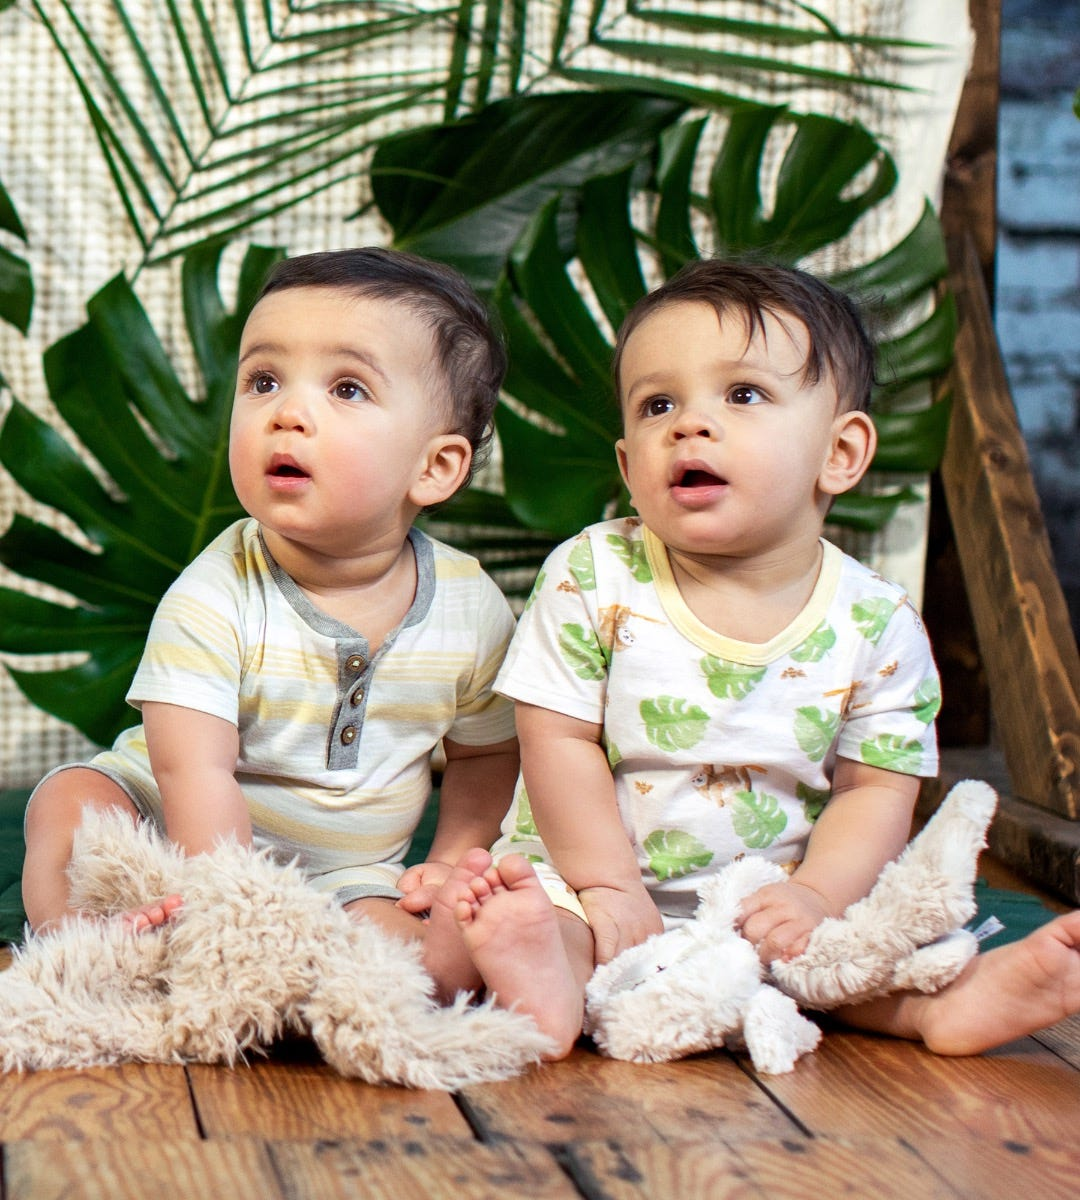 ly27642 alt3 1 A definitive guide to the 20 best sustainable clothing brands for children